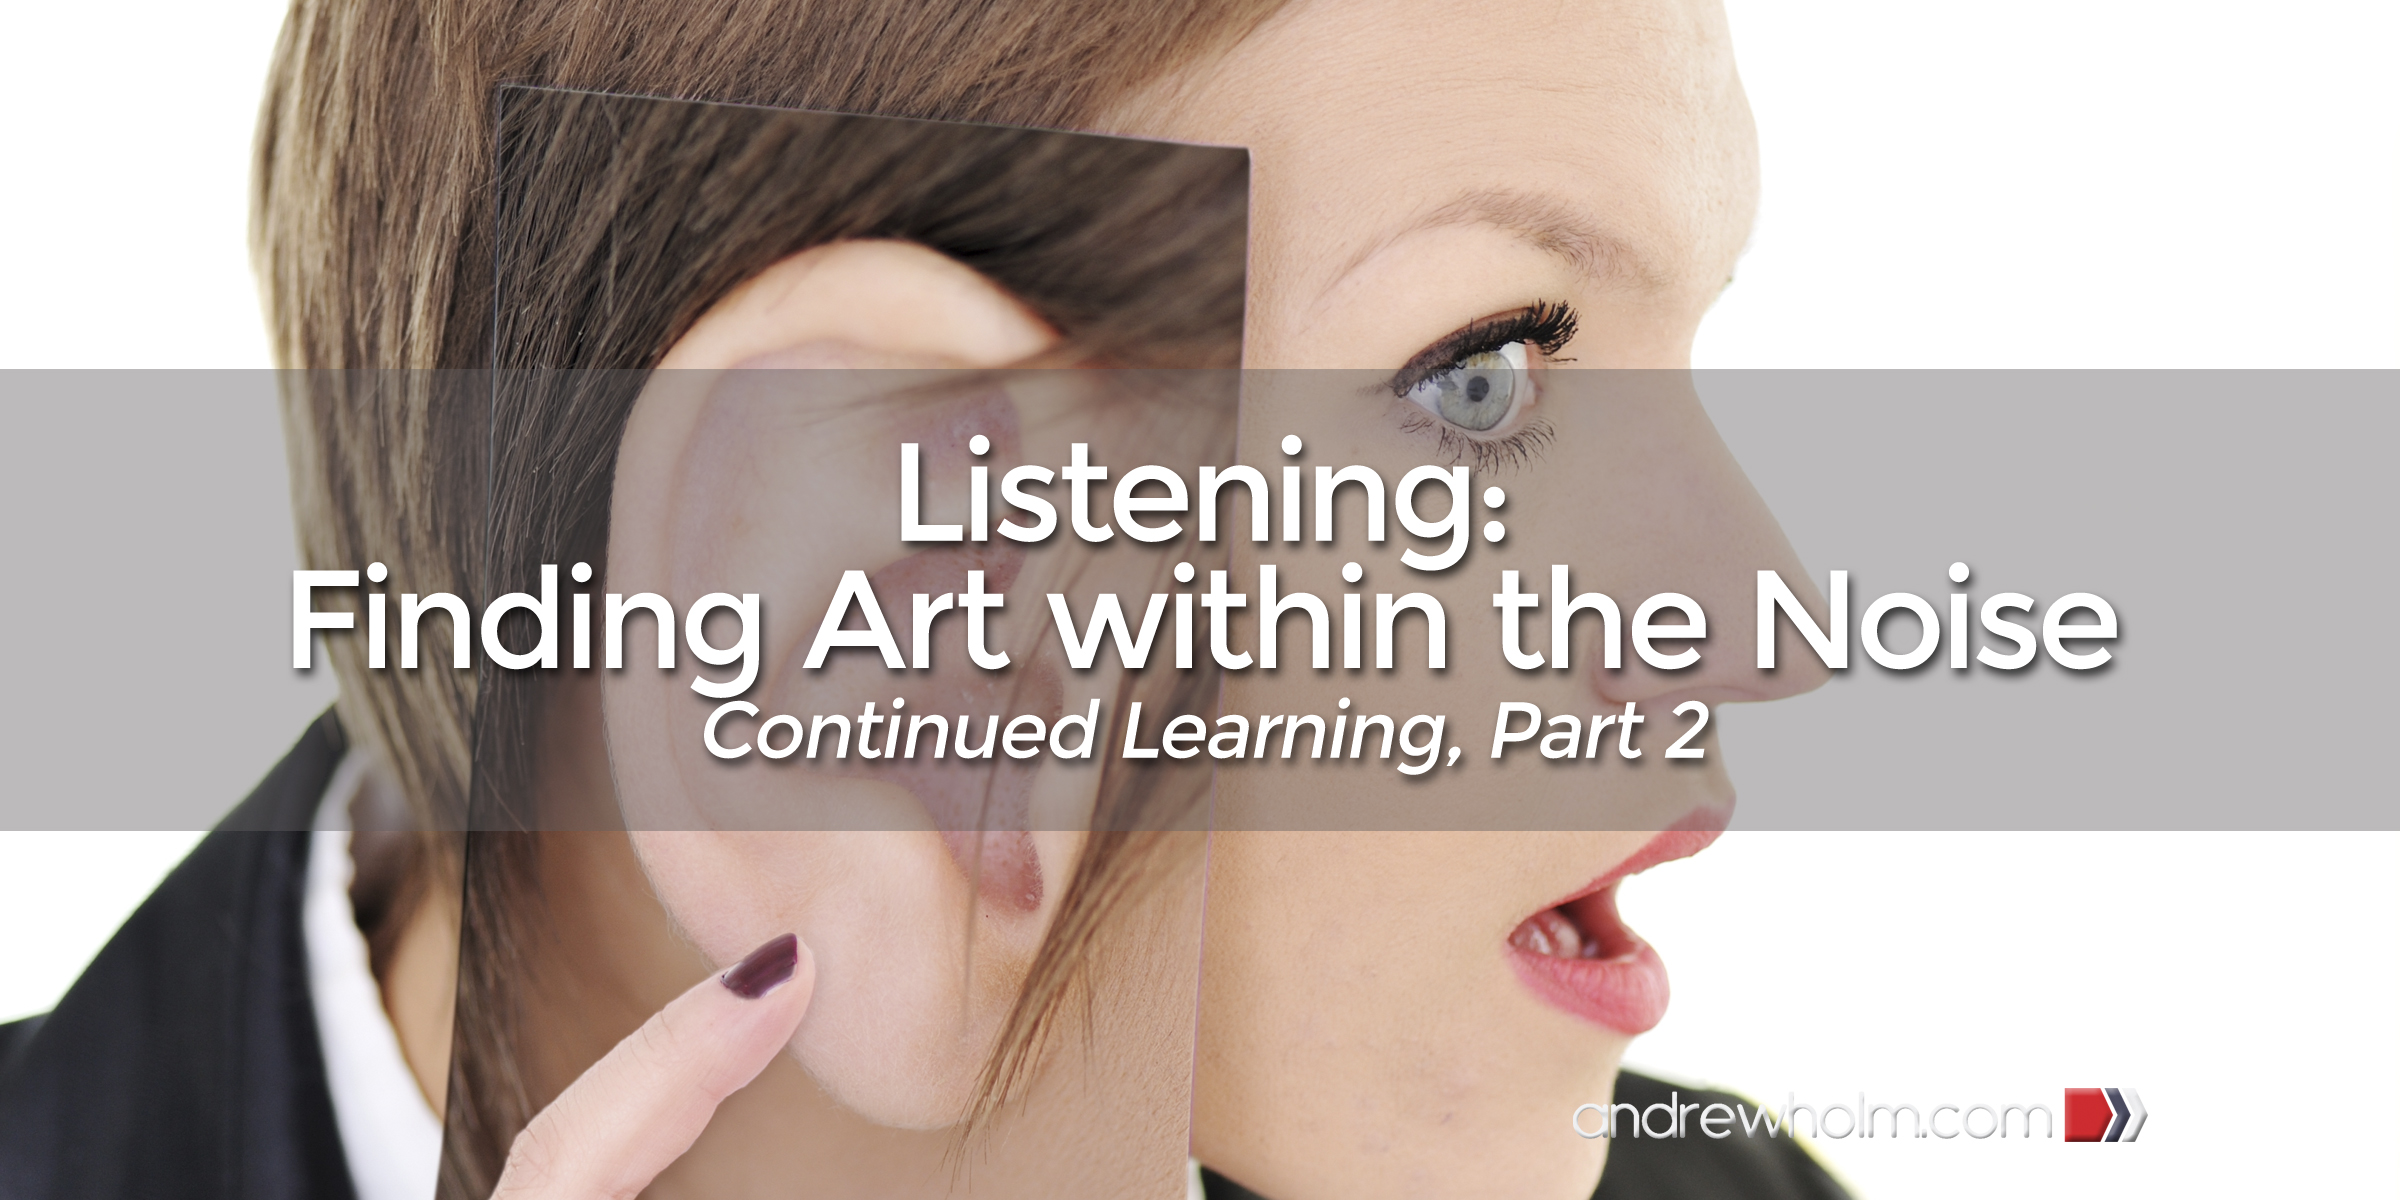 Listening: Finding Art within the Noise